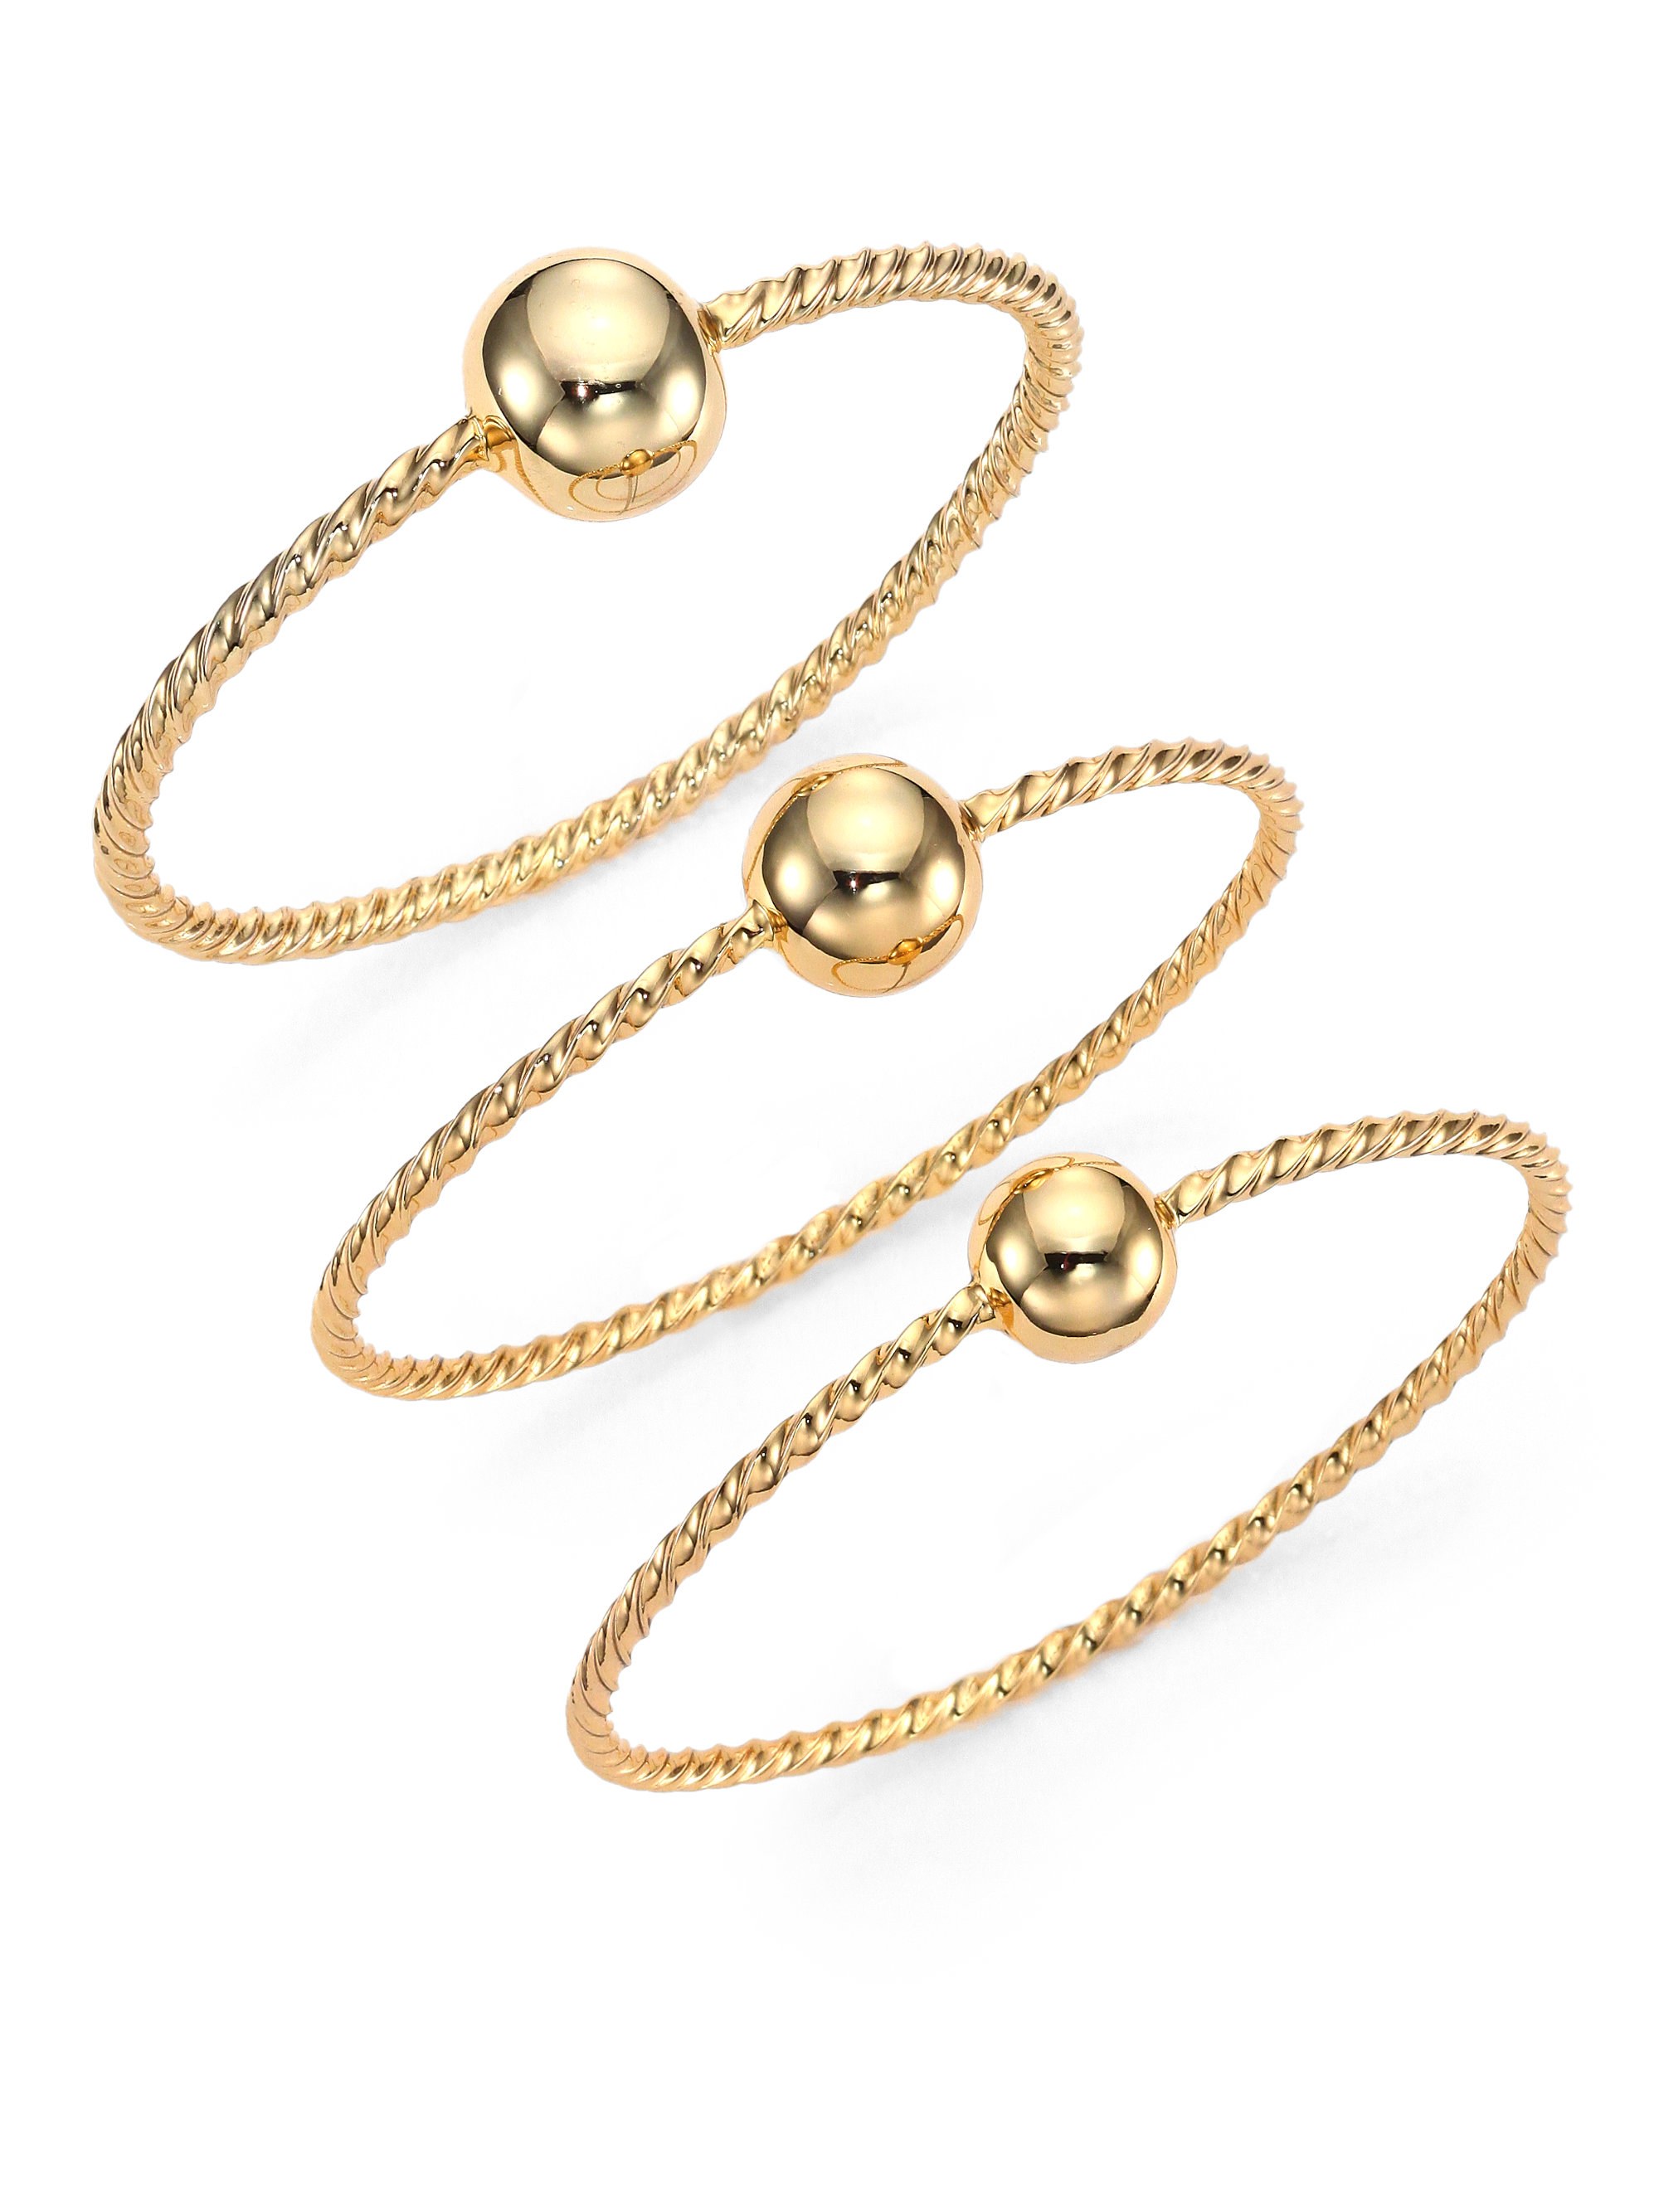 dp twist bangles sterling and com amazon ball jewelry bracelet solid royal cuff silver twisted gold unique